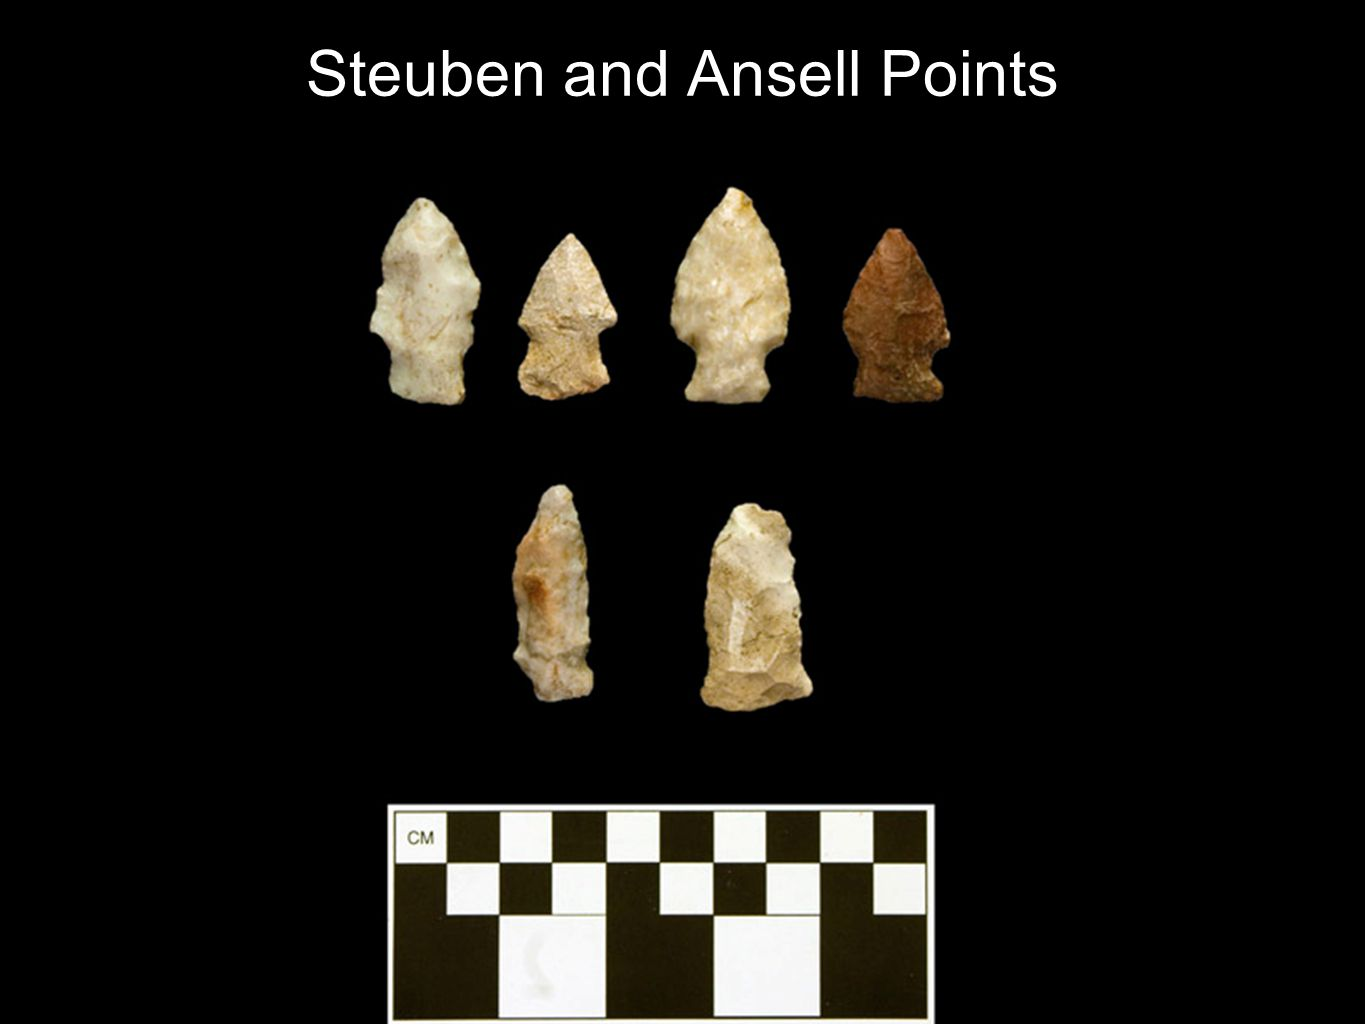 Steuben and Ansell Points